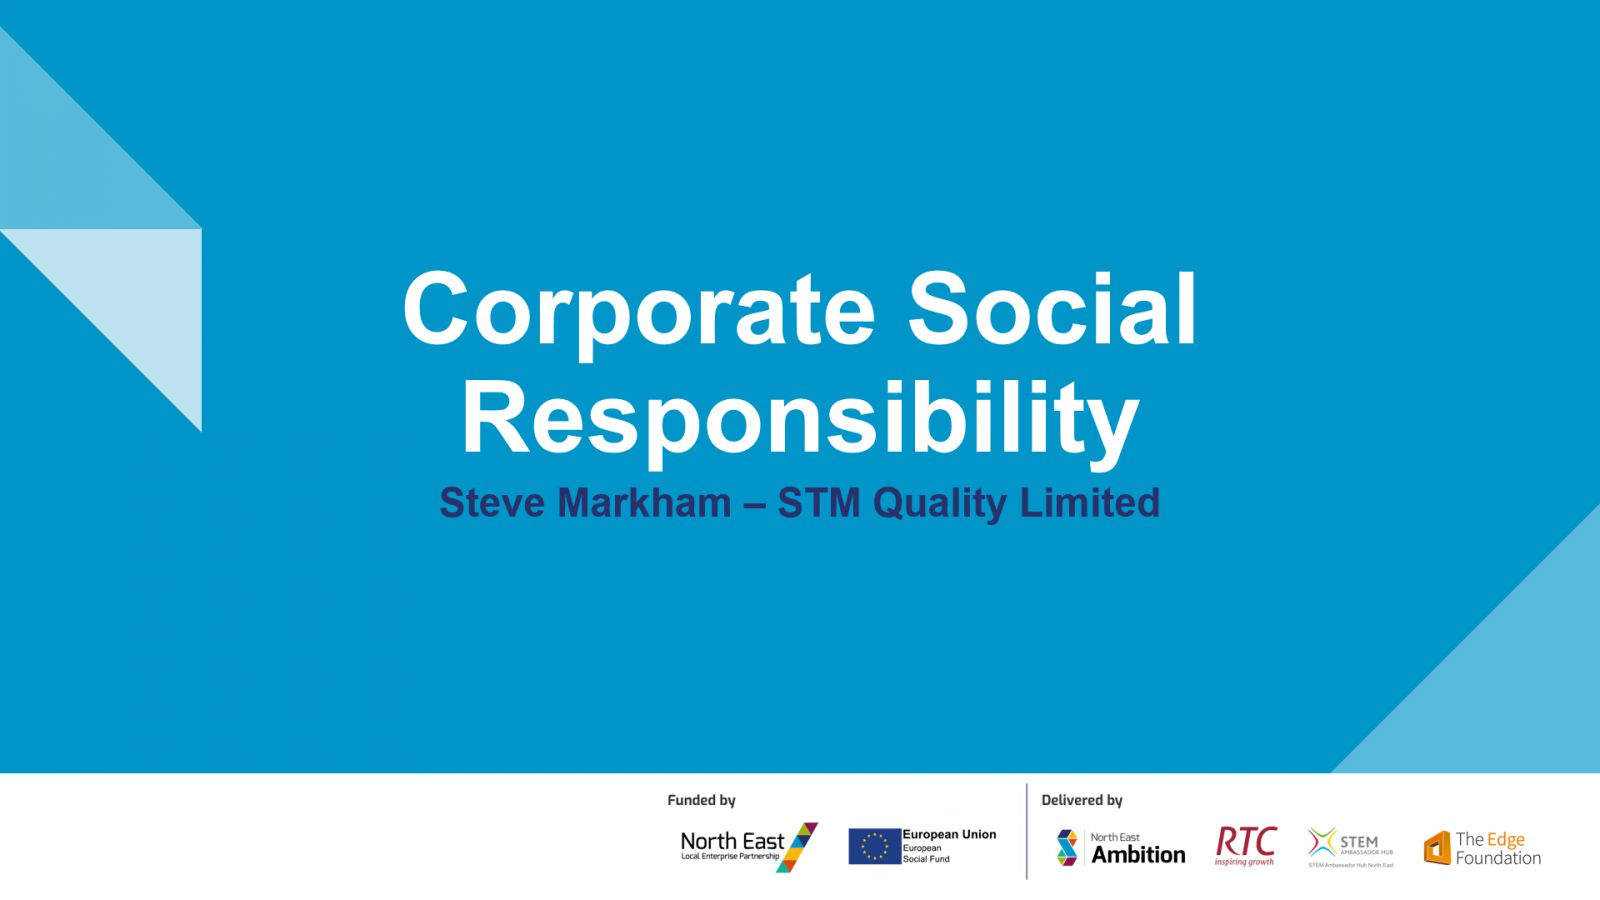 Steve Markham from STM Quality on Corporate Social Responsibility